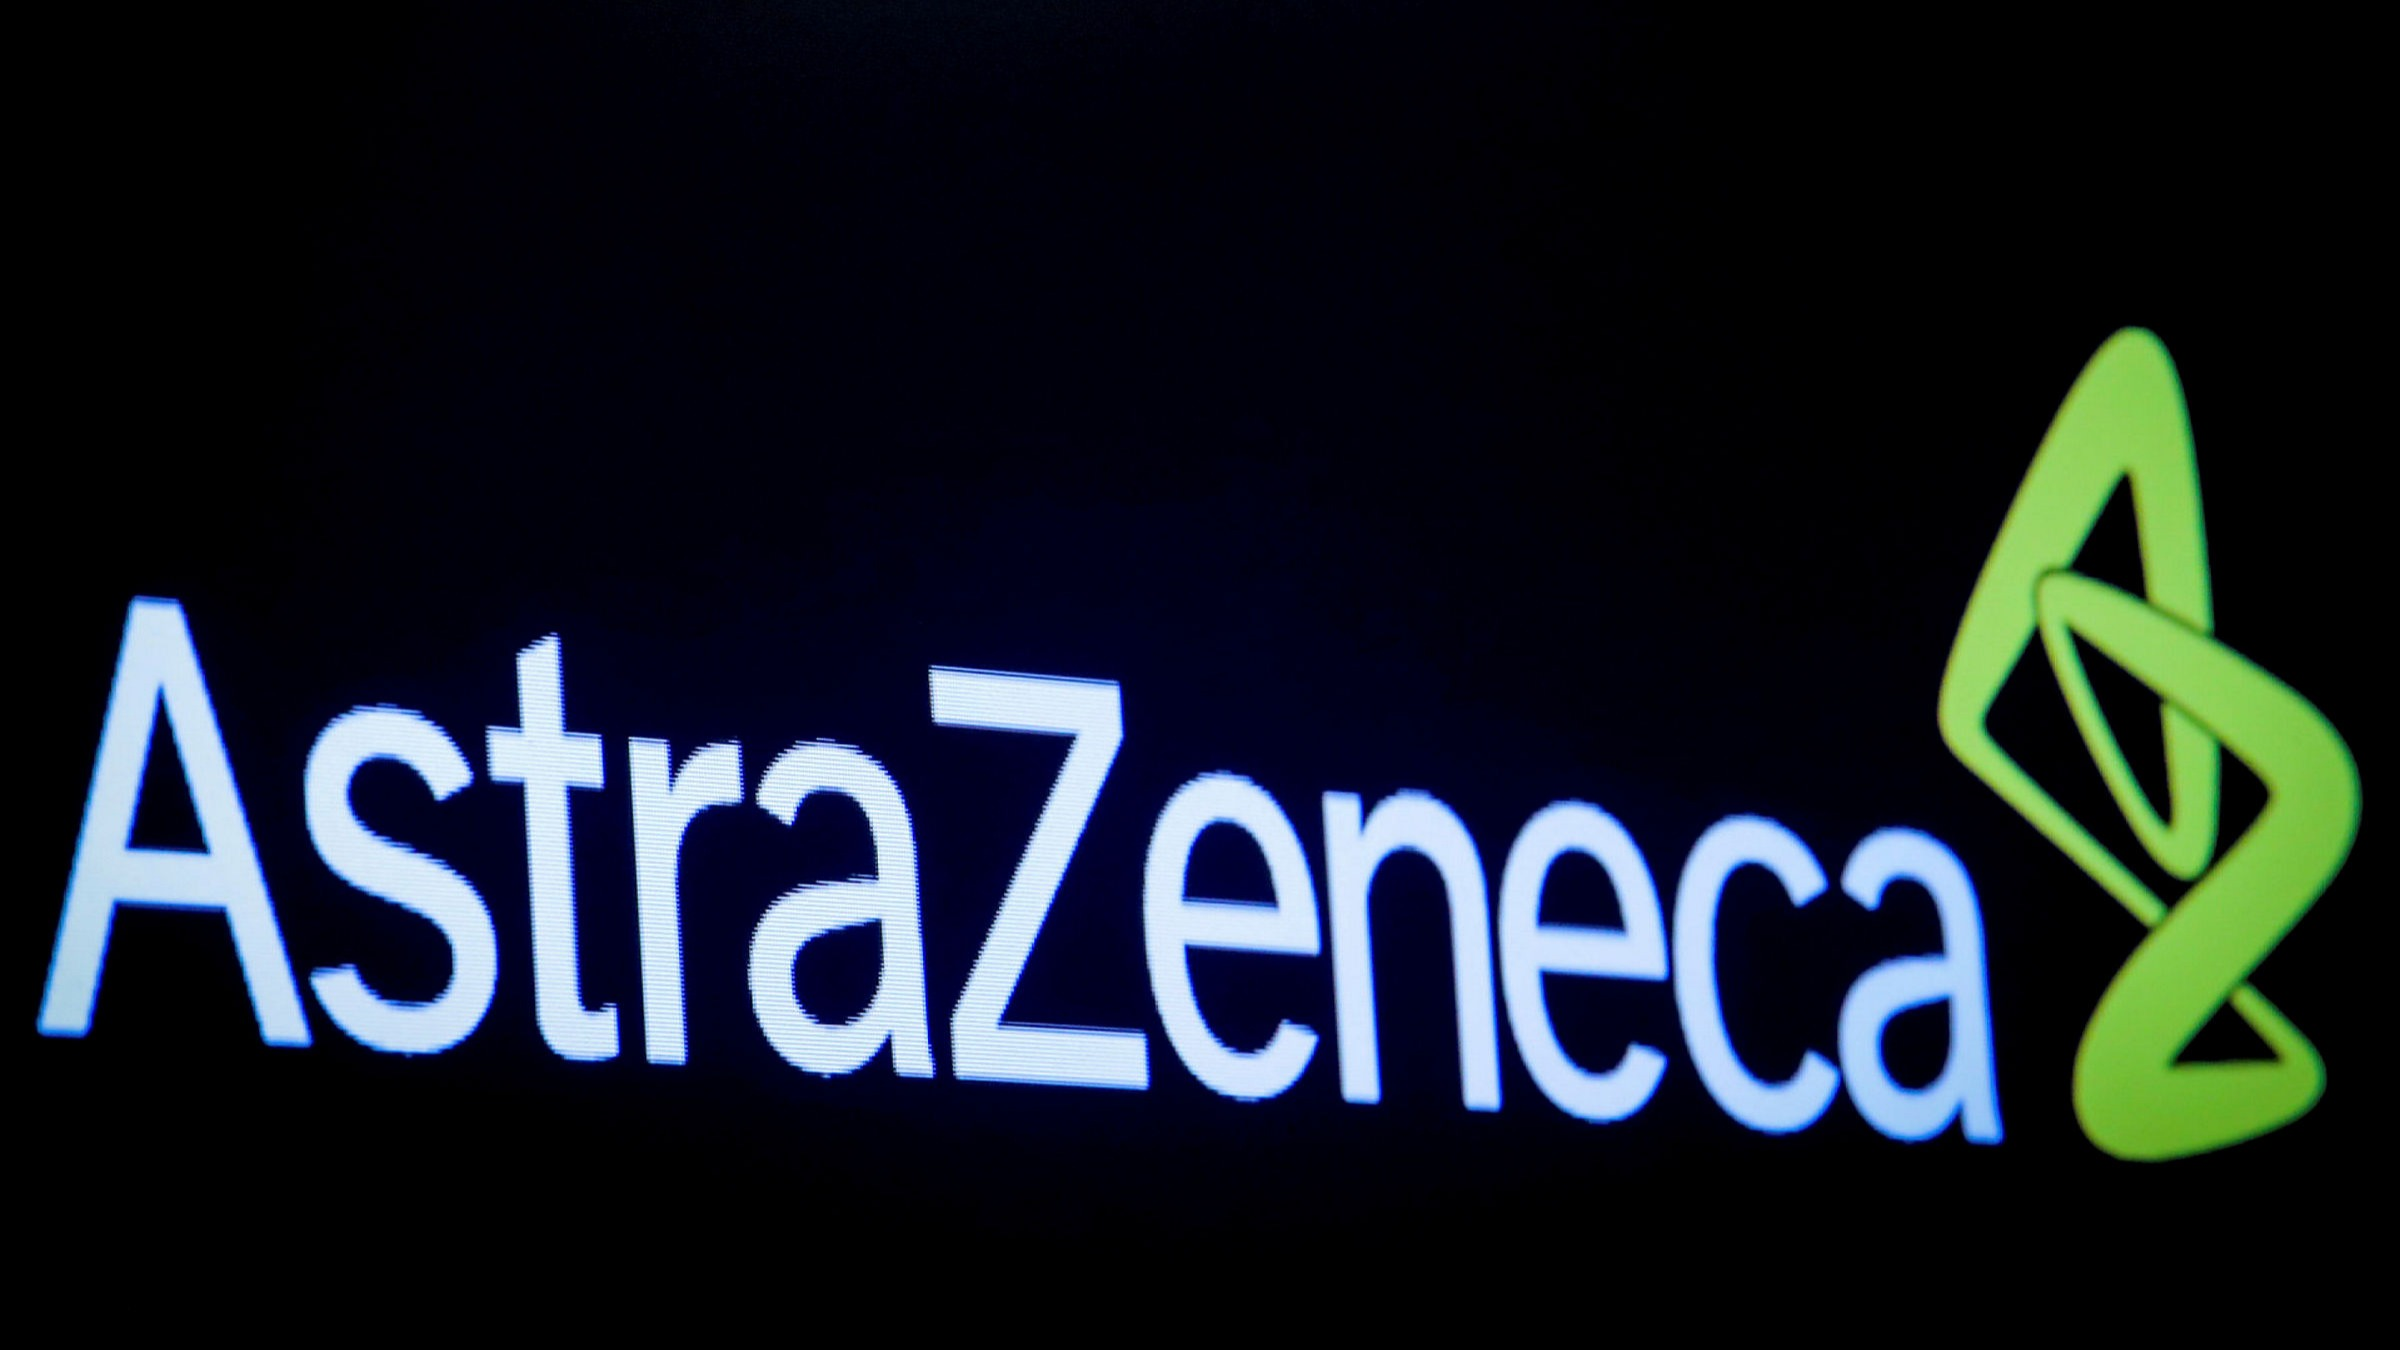 AstraZeneca announce a maintained dividend